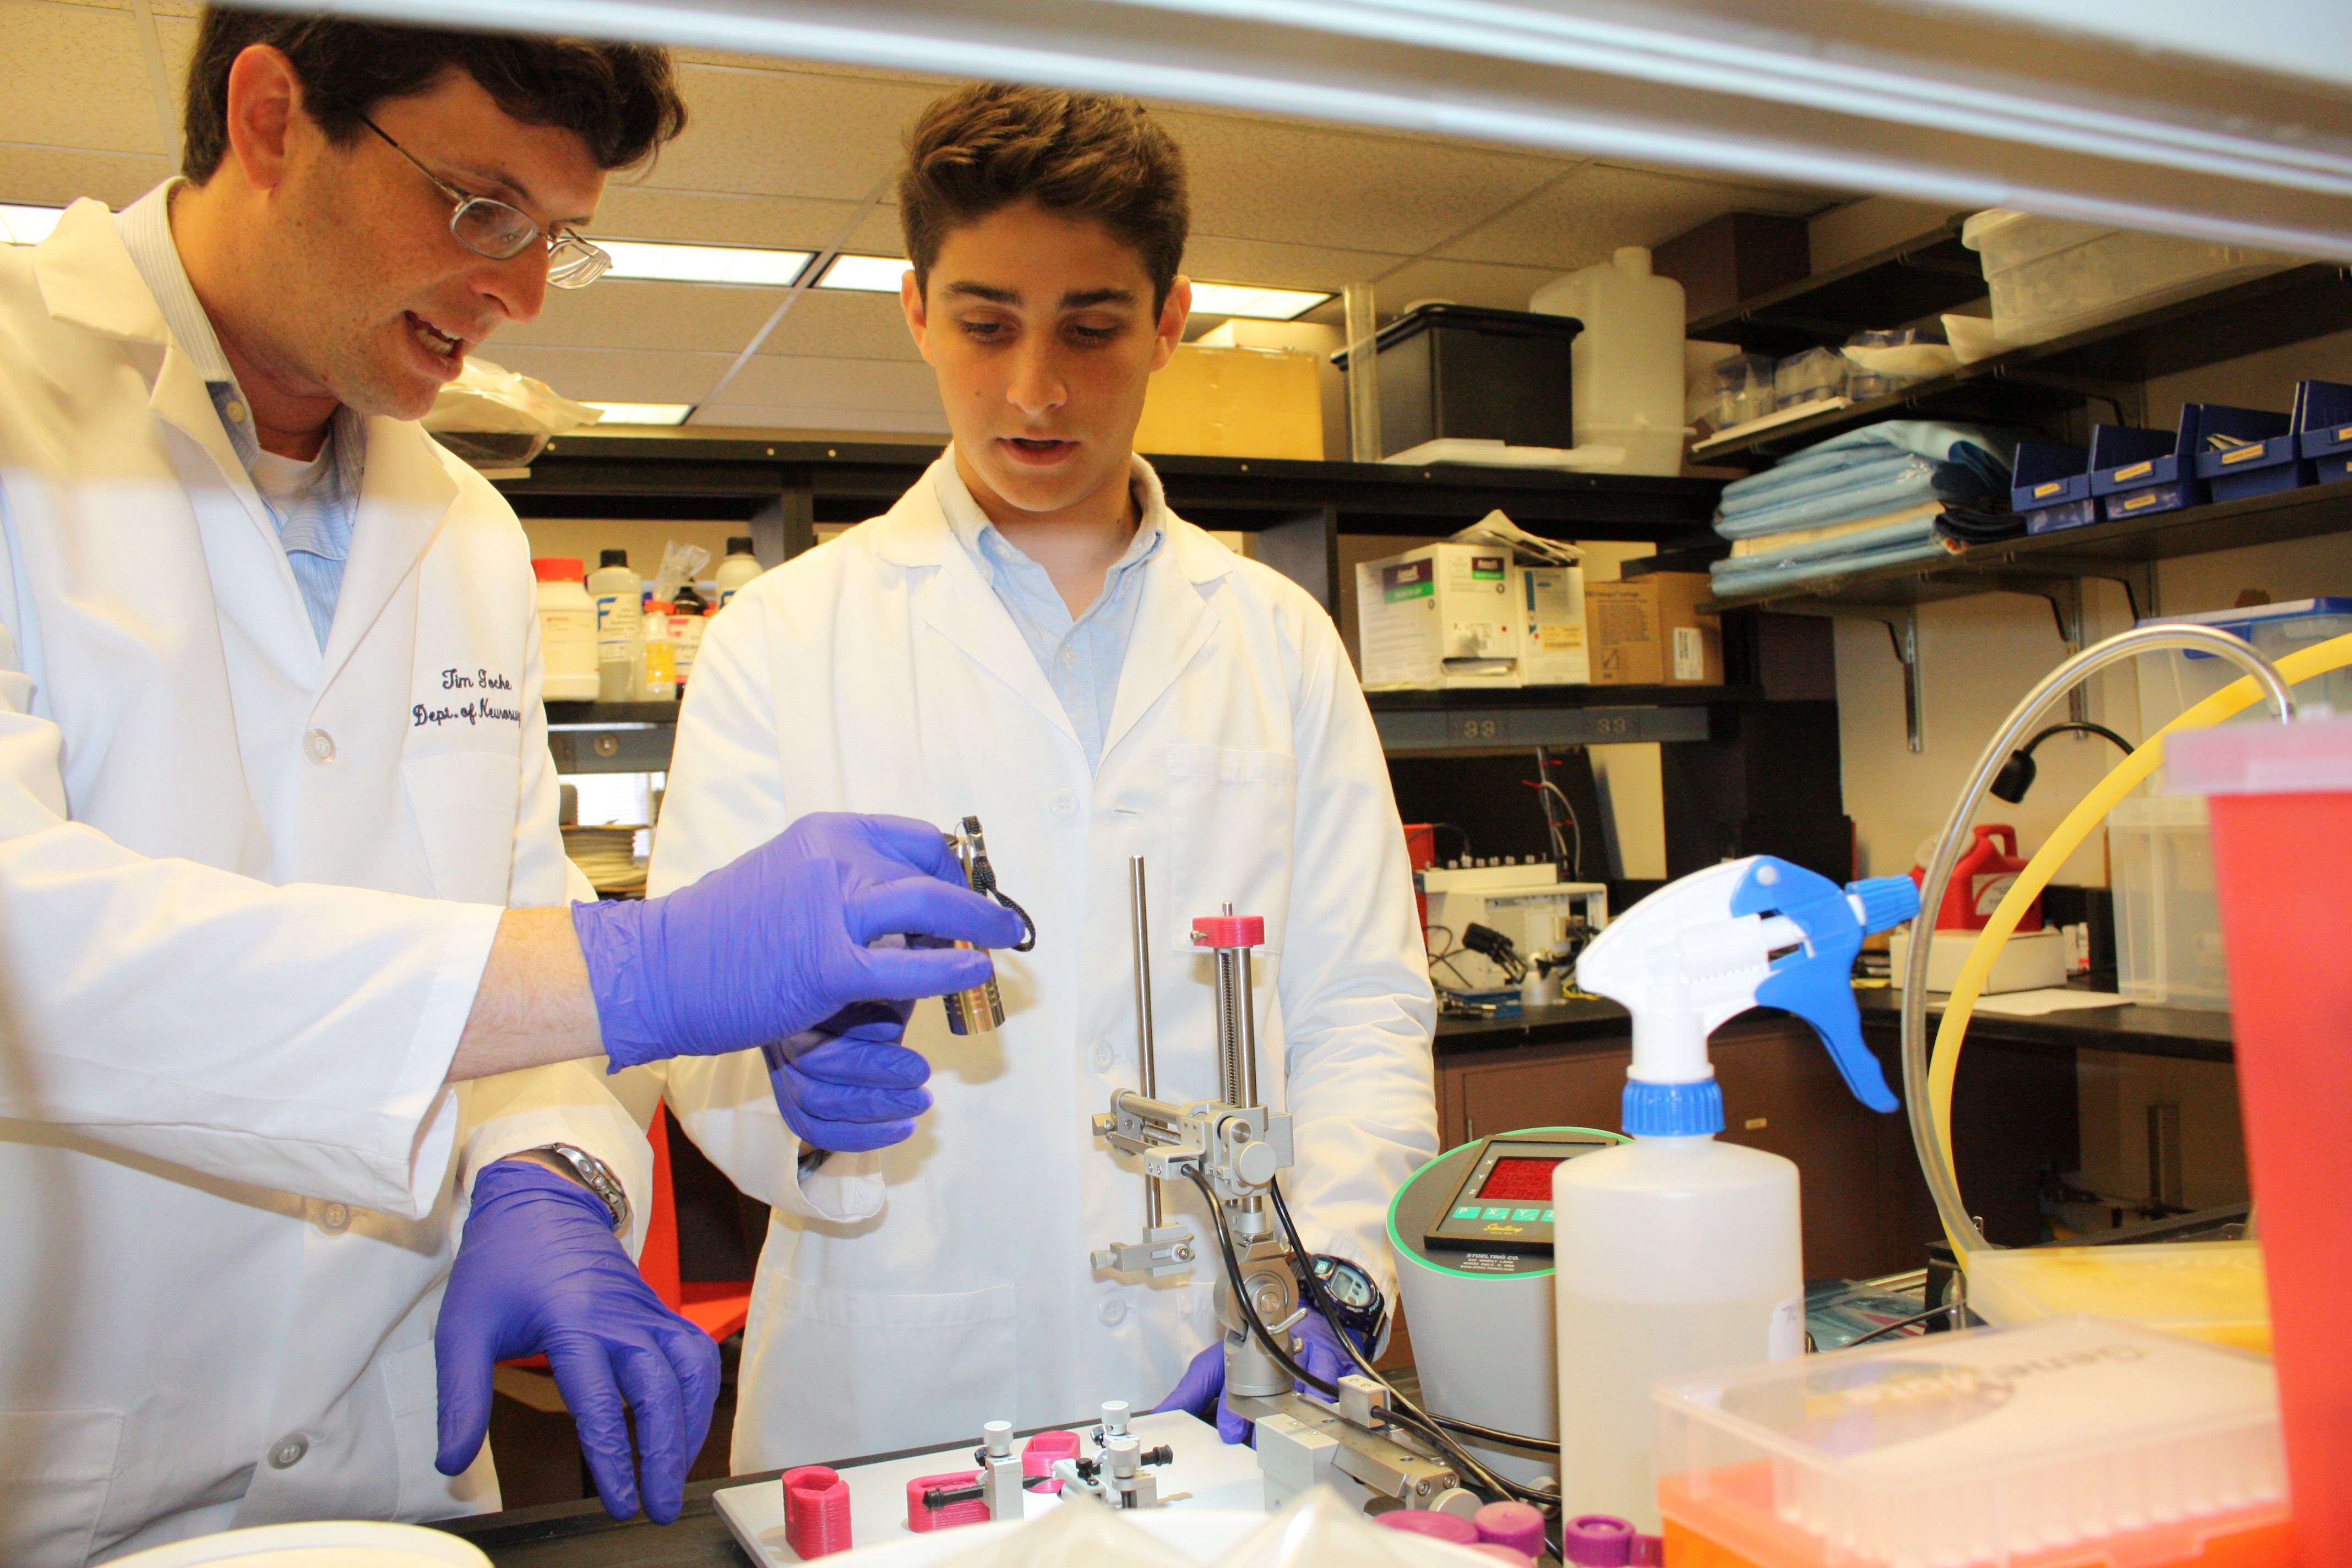 At the Forefront: PC Interns Researching in Science and Engineering